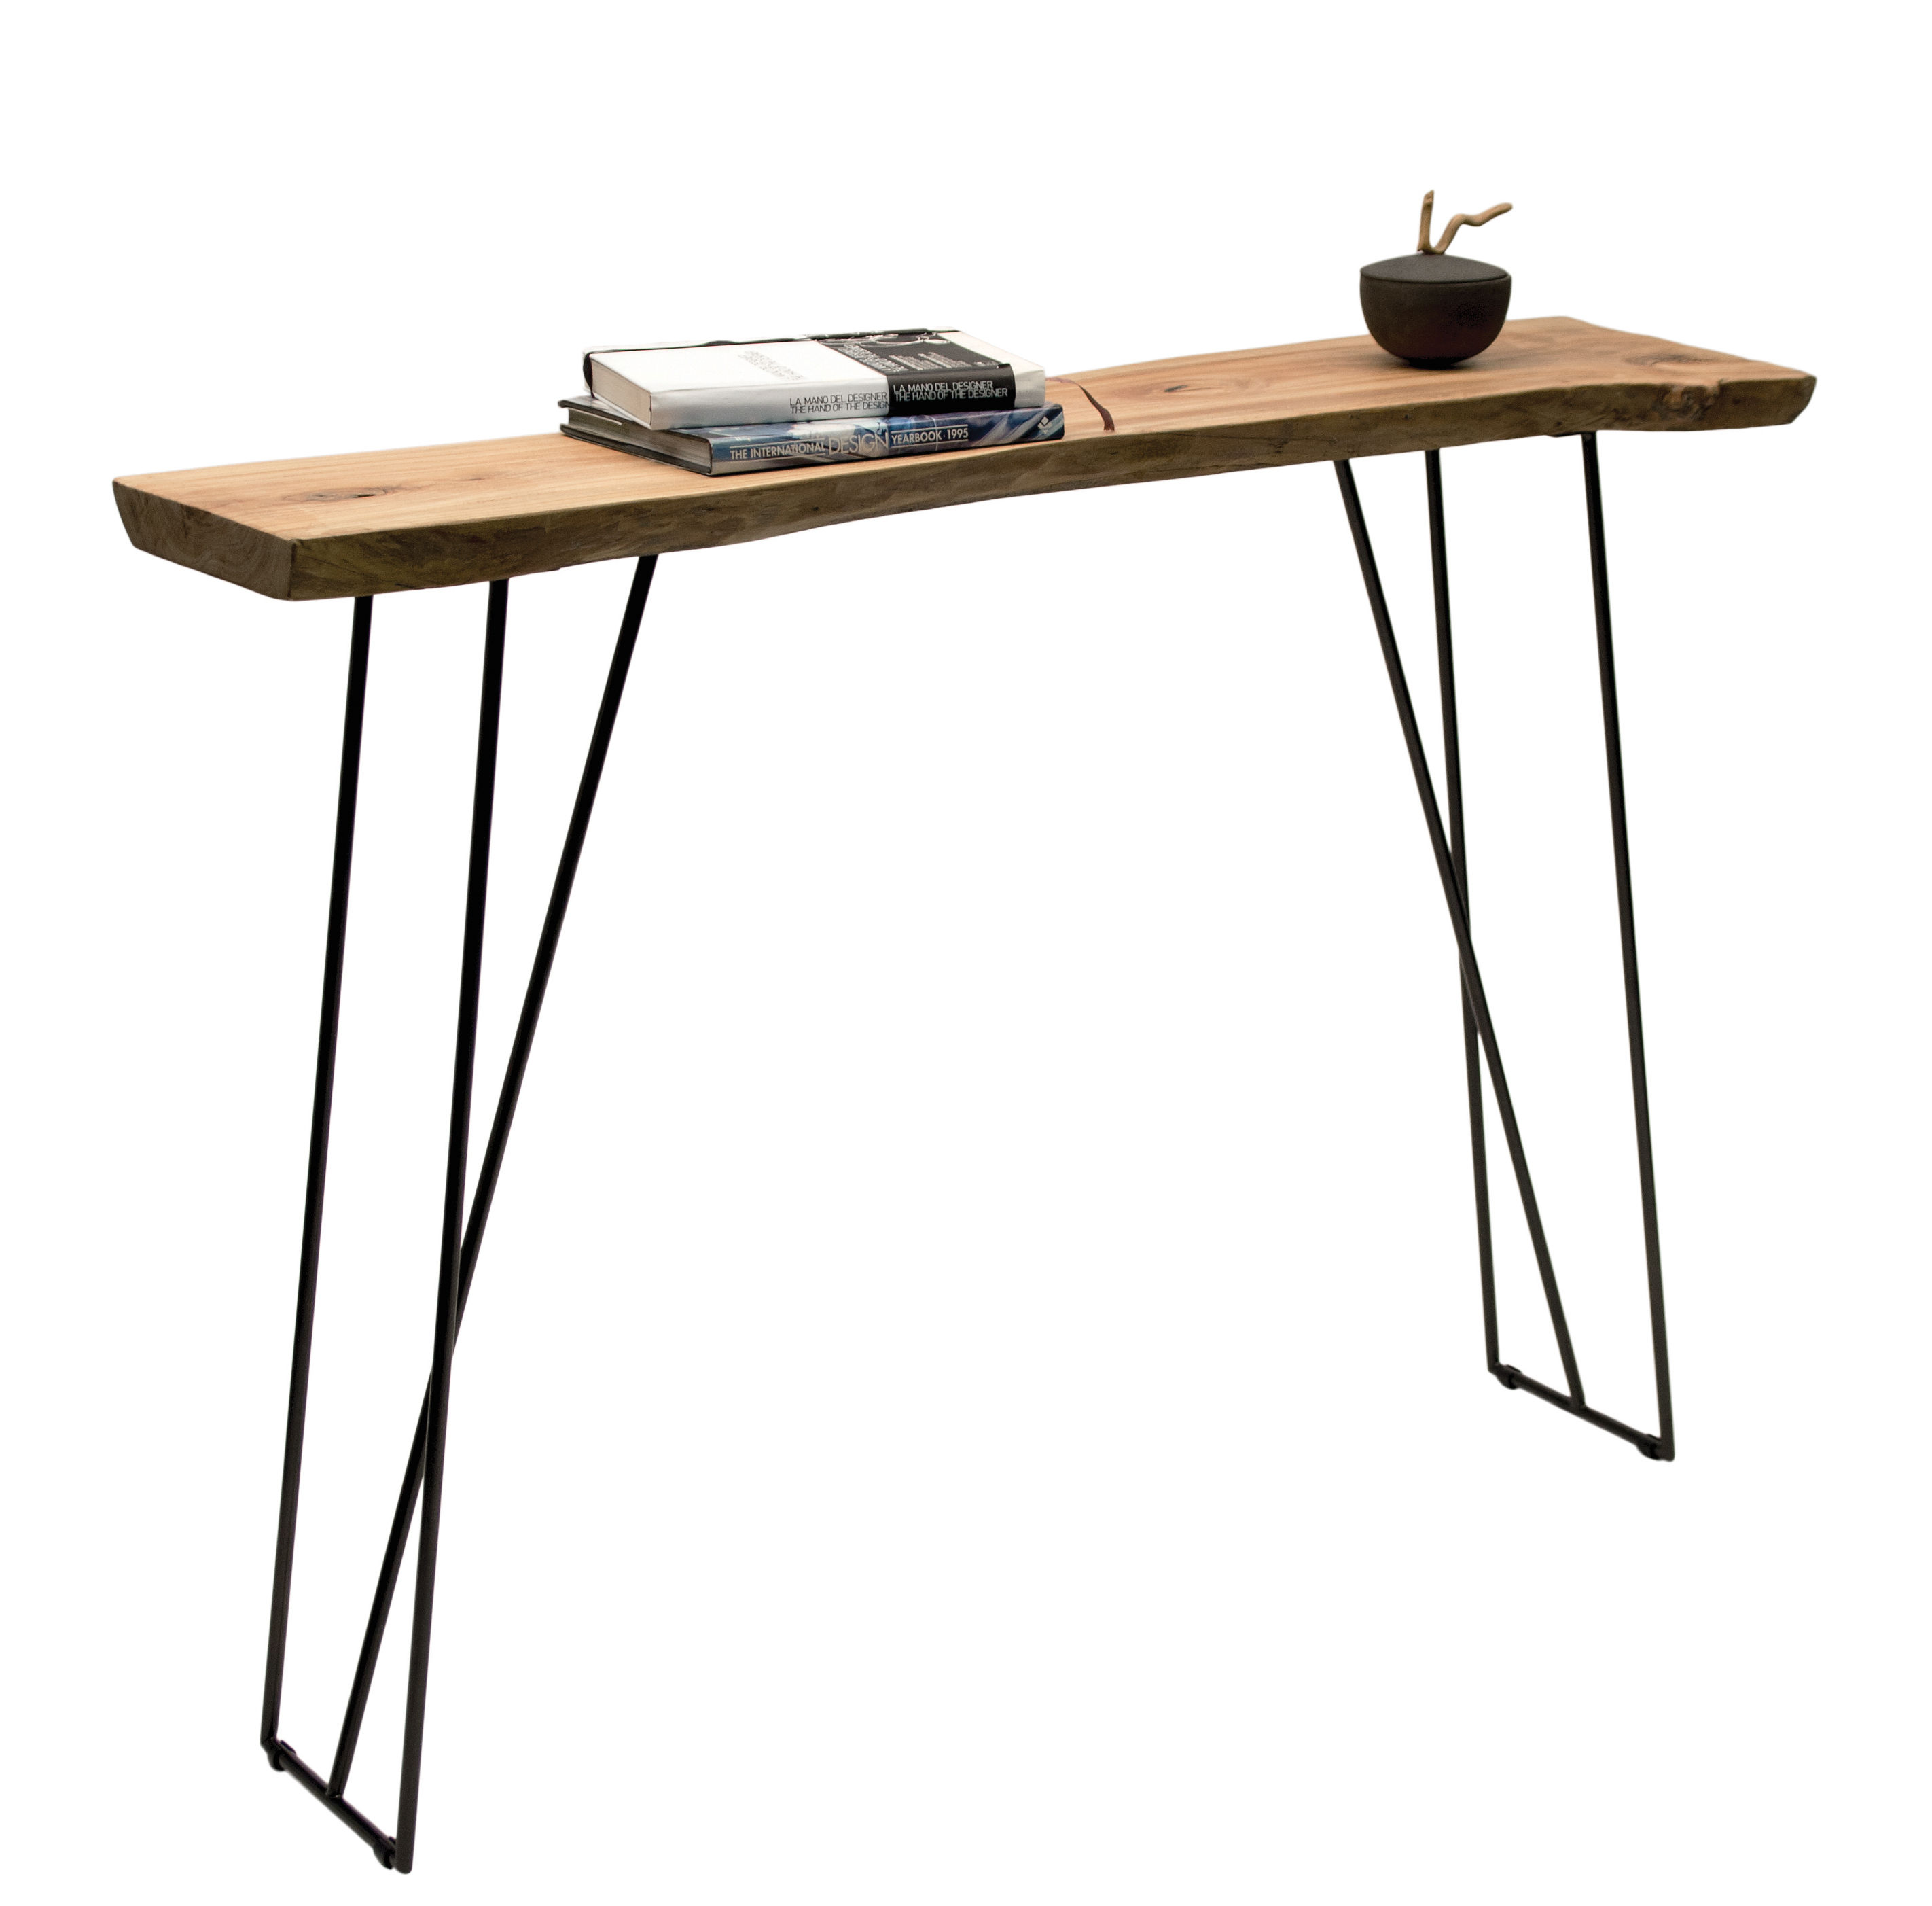 Furniture - Console Tables - Old Times Console by Zeus - Natural wood / Black leg - Painted steel, Solid olive tree